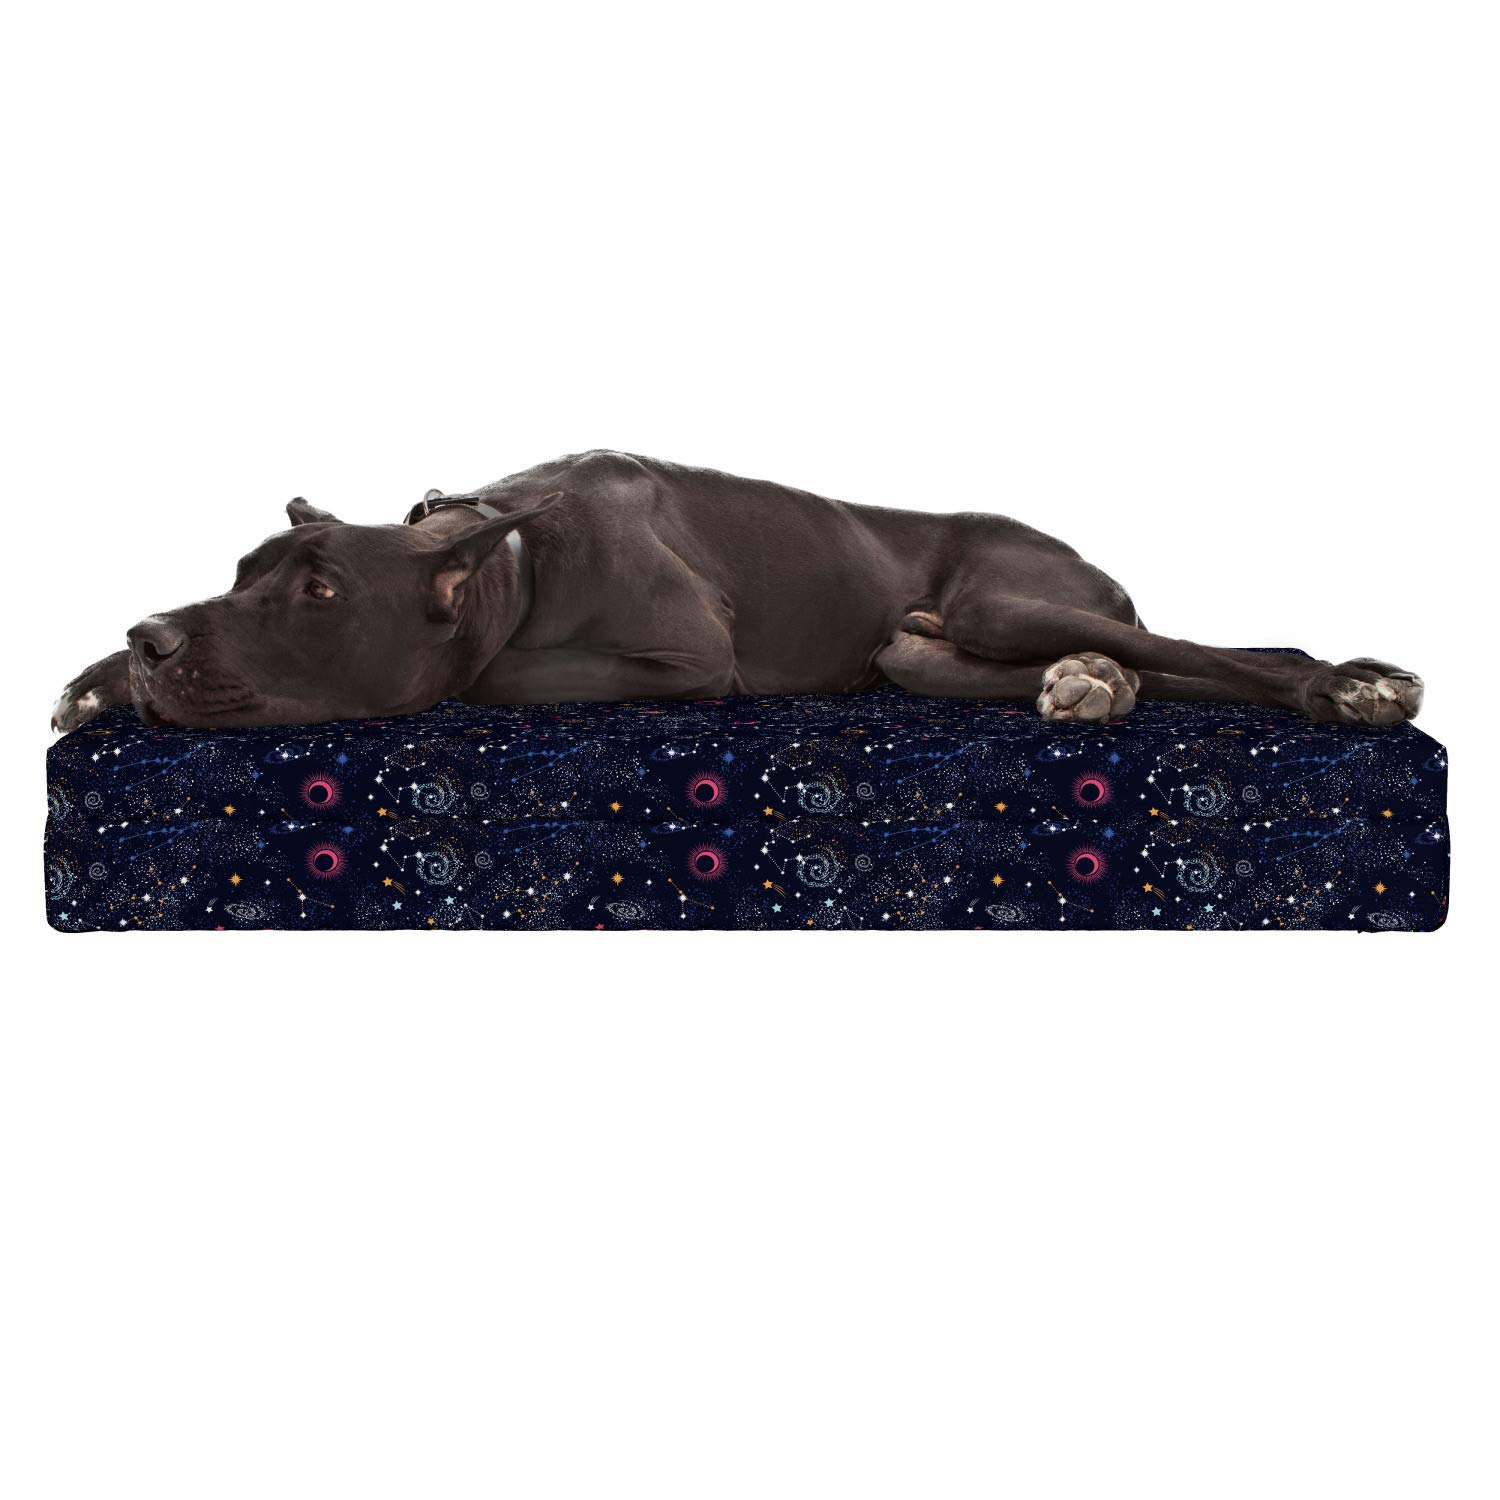 Lunarable Constellation Dog Bed, Star Clusters Galaxies and Planets Astrology Themed Abstract Illustration, Durable Washable Mat with Decorative Fabric Cover, 48'' x 32'' x 6'', Multicolor